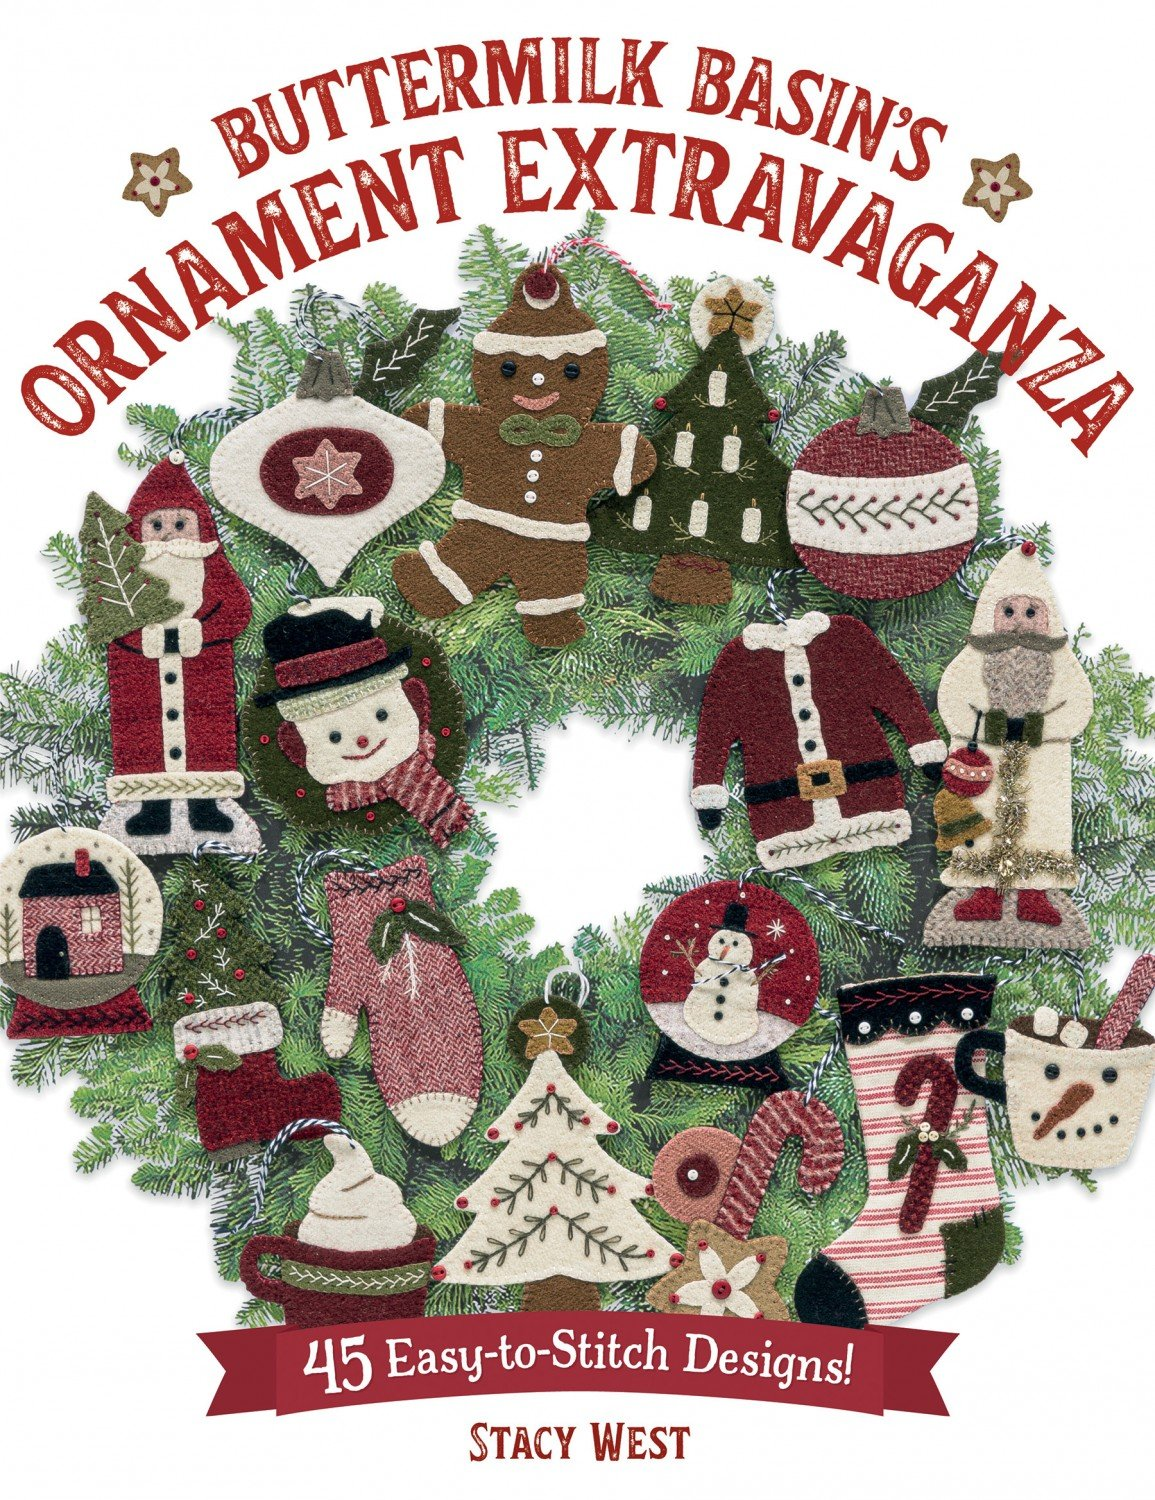 Buttermilk Basin's Ornament Extravaganza